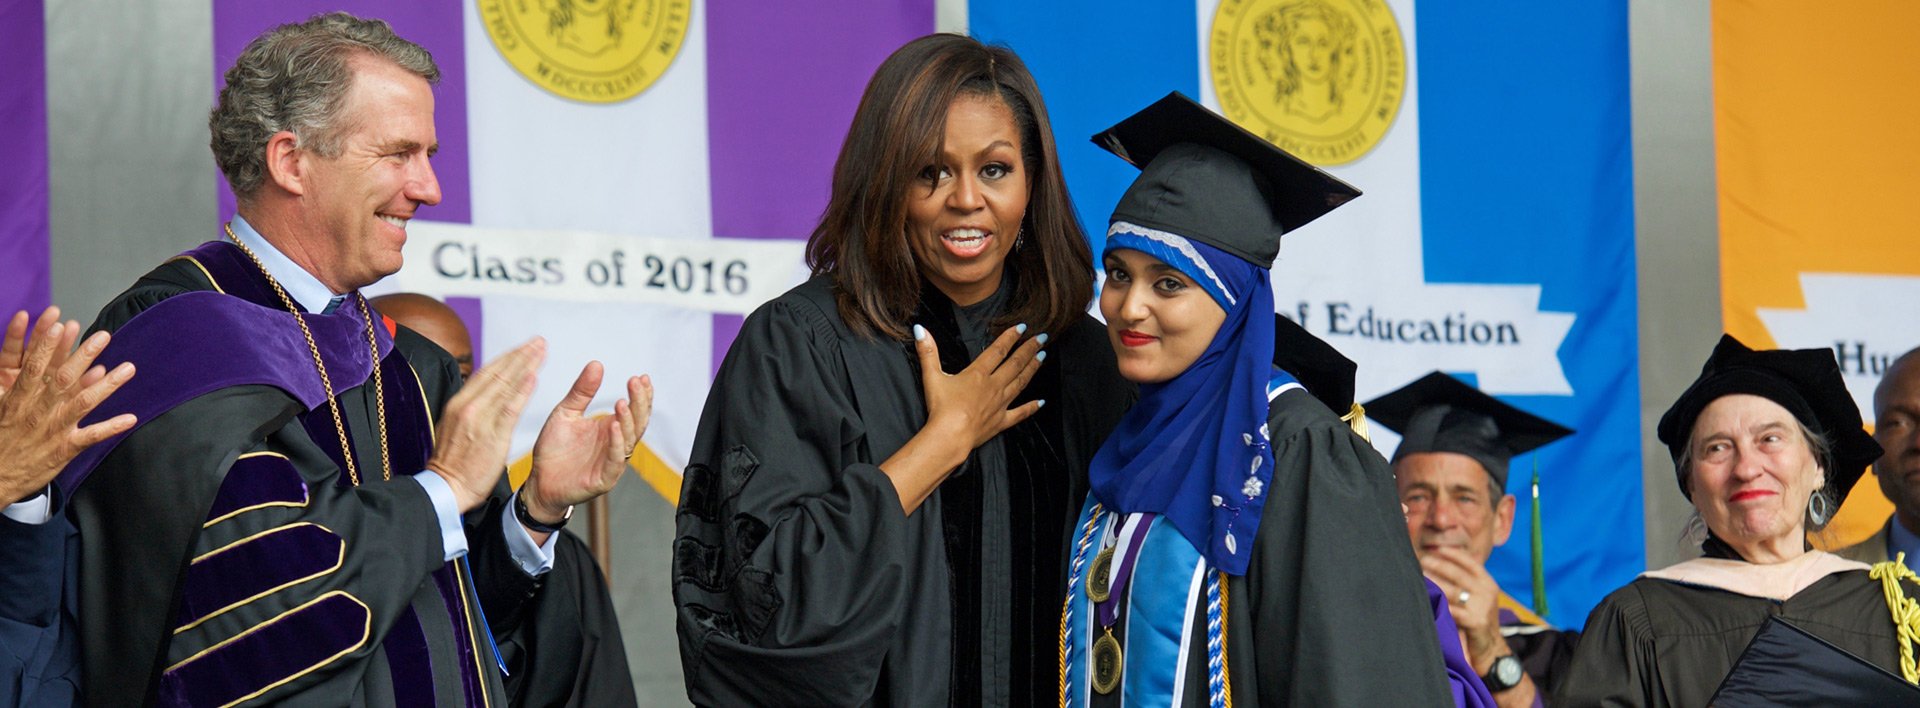 Chancellor James B. Milliken, Keynote Speaker Michelle Obama (c) and Salutatorian Orubba Almansouri at the 2016 CCNY/City College of New York commencement